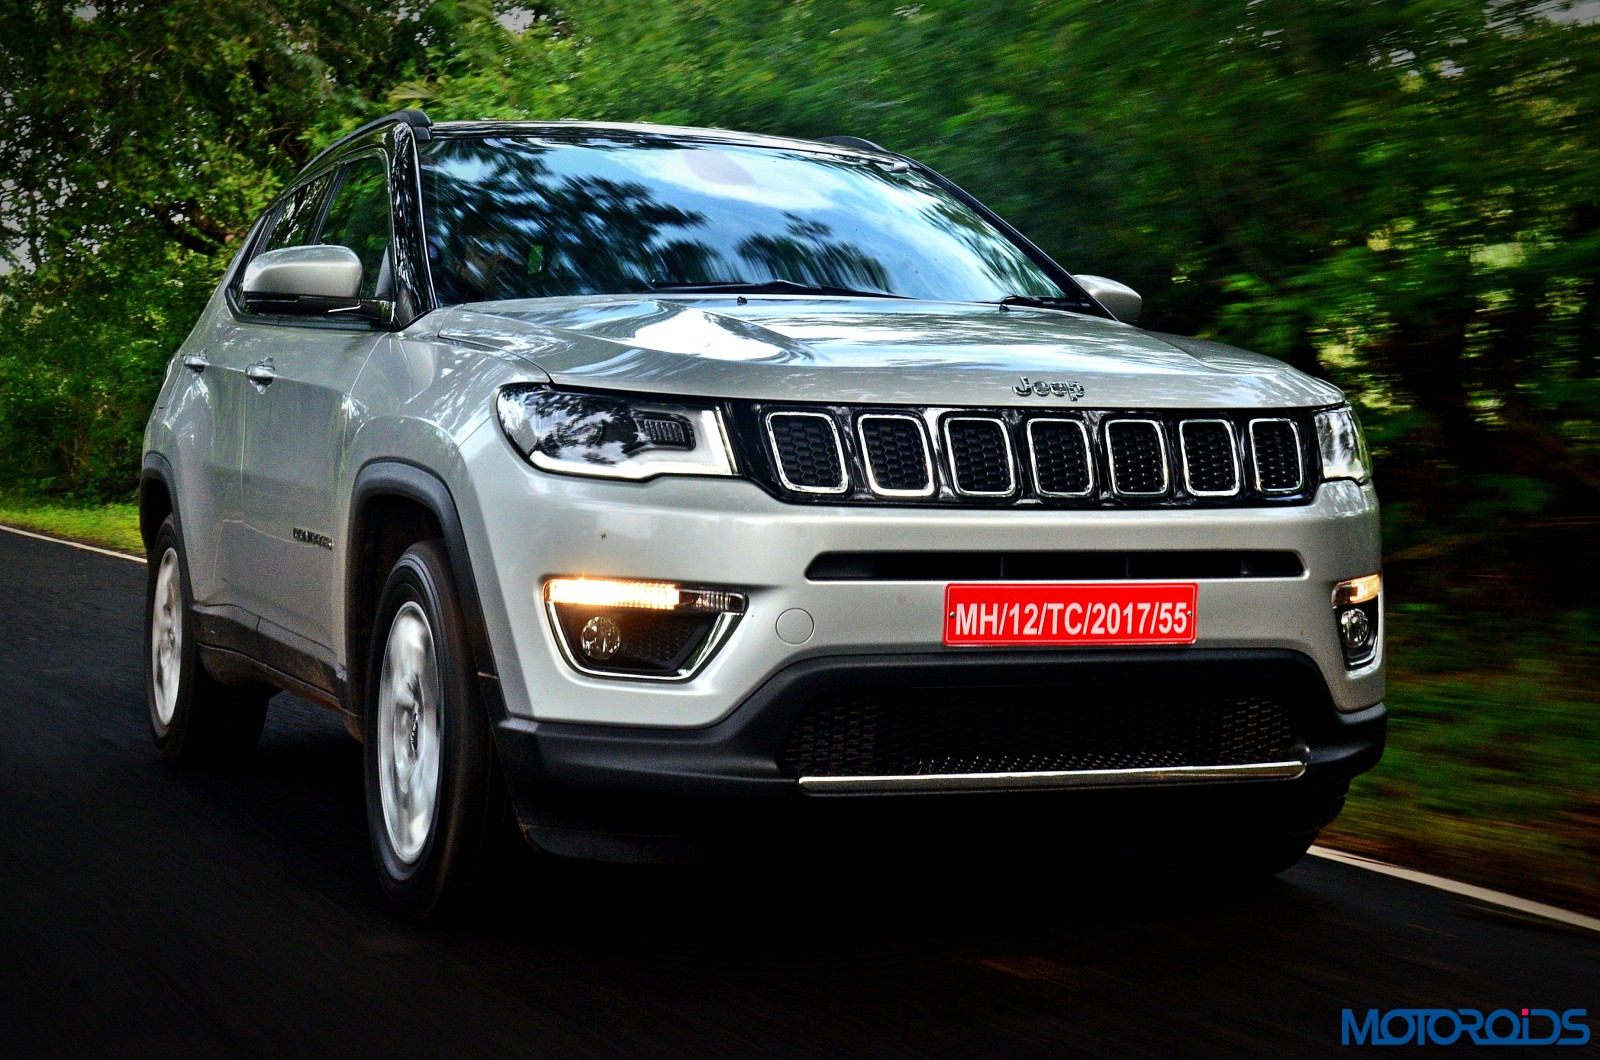 jeep compass india review price specs mileage image gallery interior and features motoroids. Black Bedroom Furniture Sets. Home Design Ideas